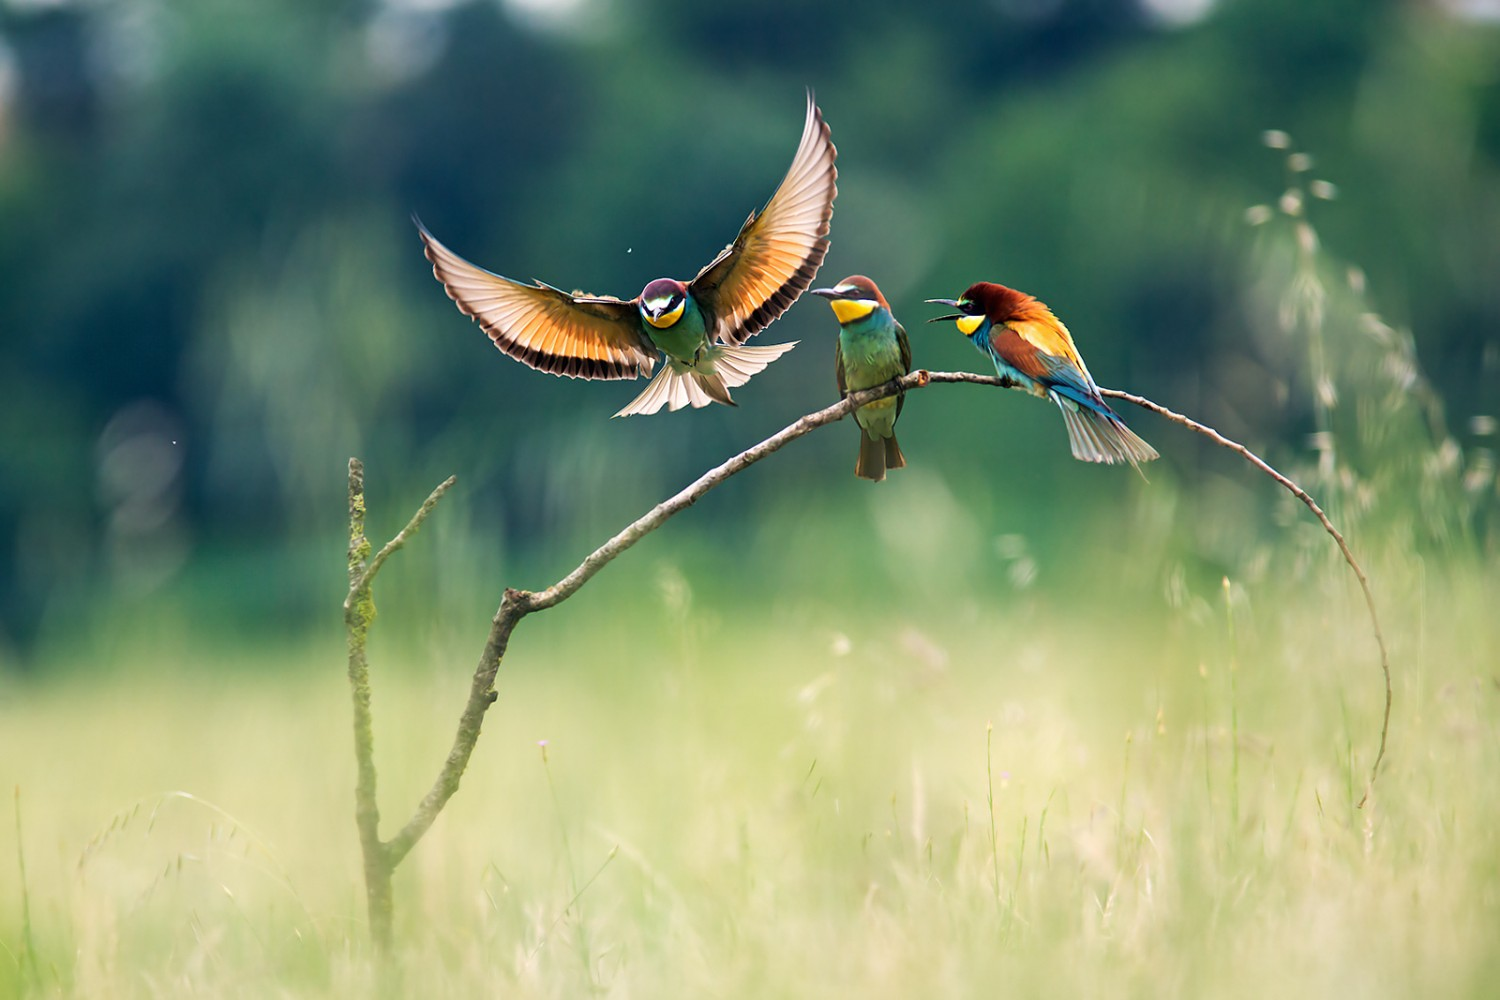 The Story Behind One of the Best Bird Photos on 500px